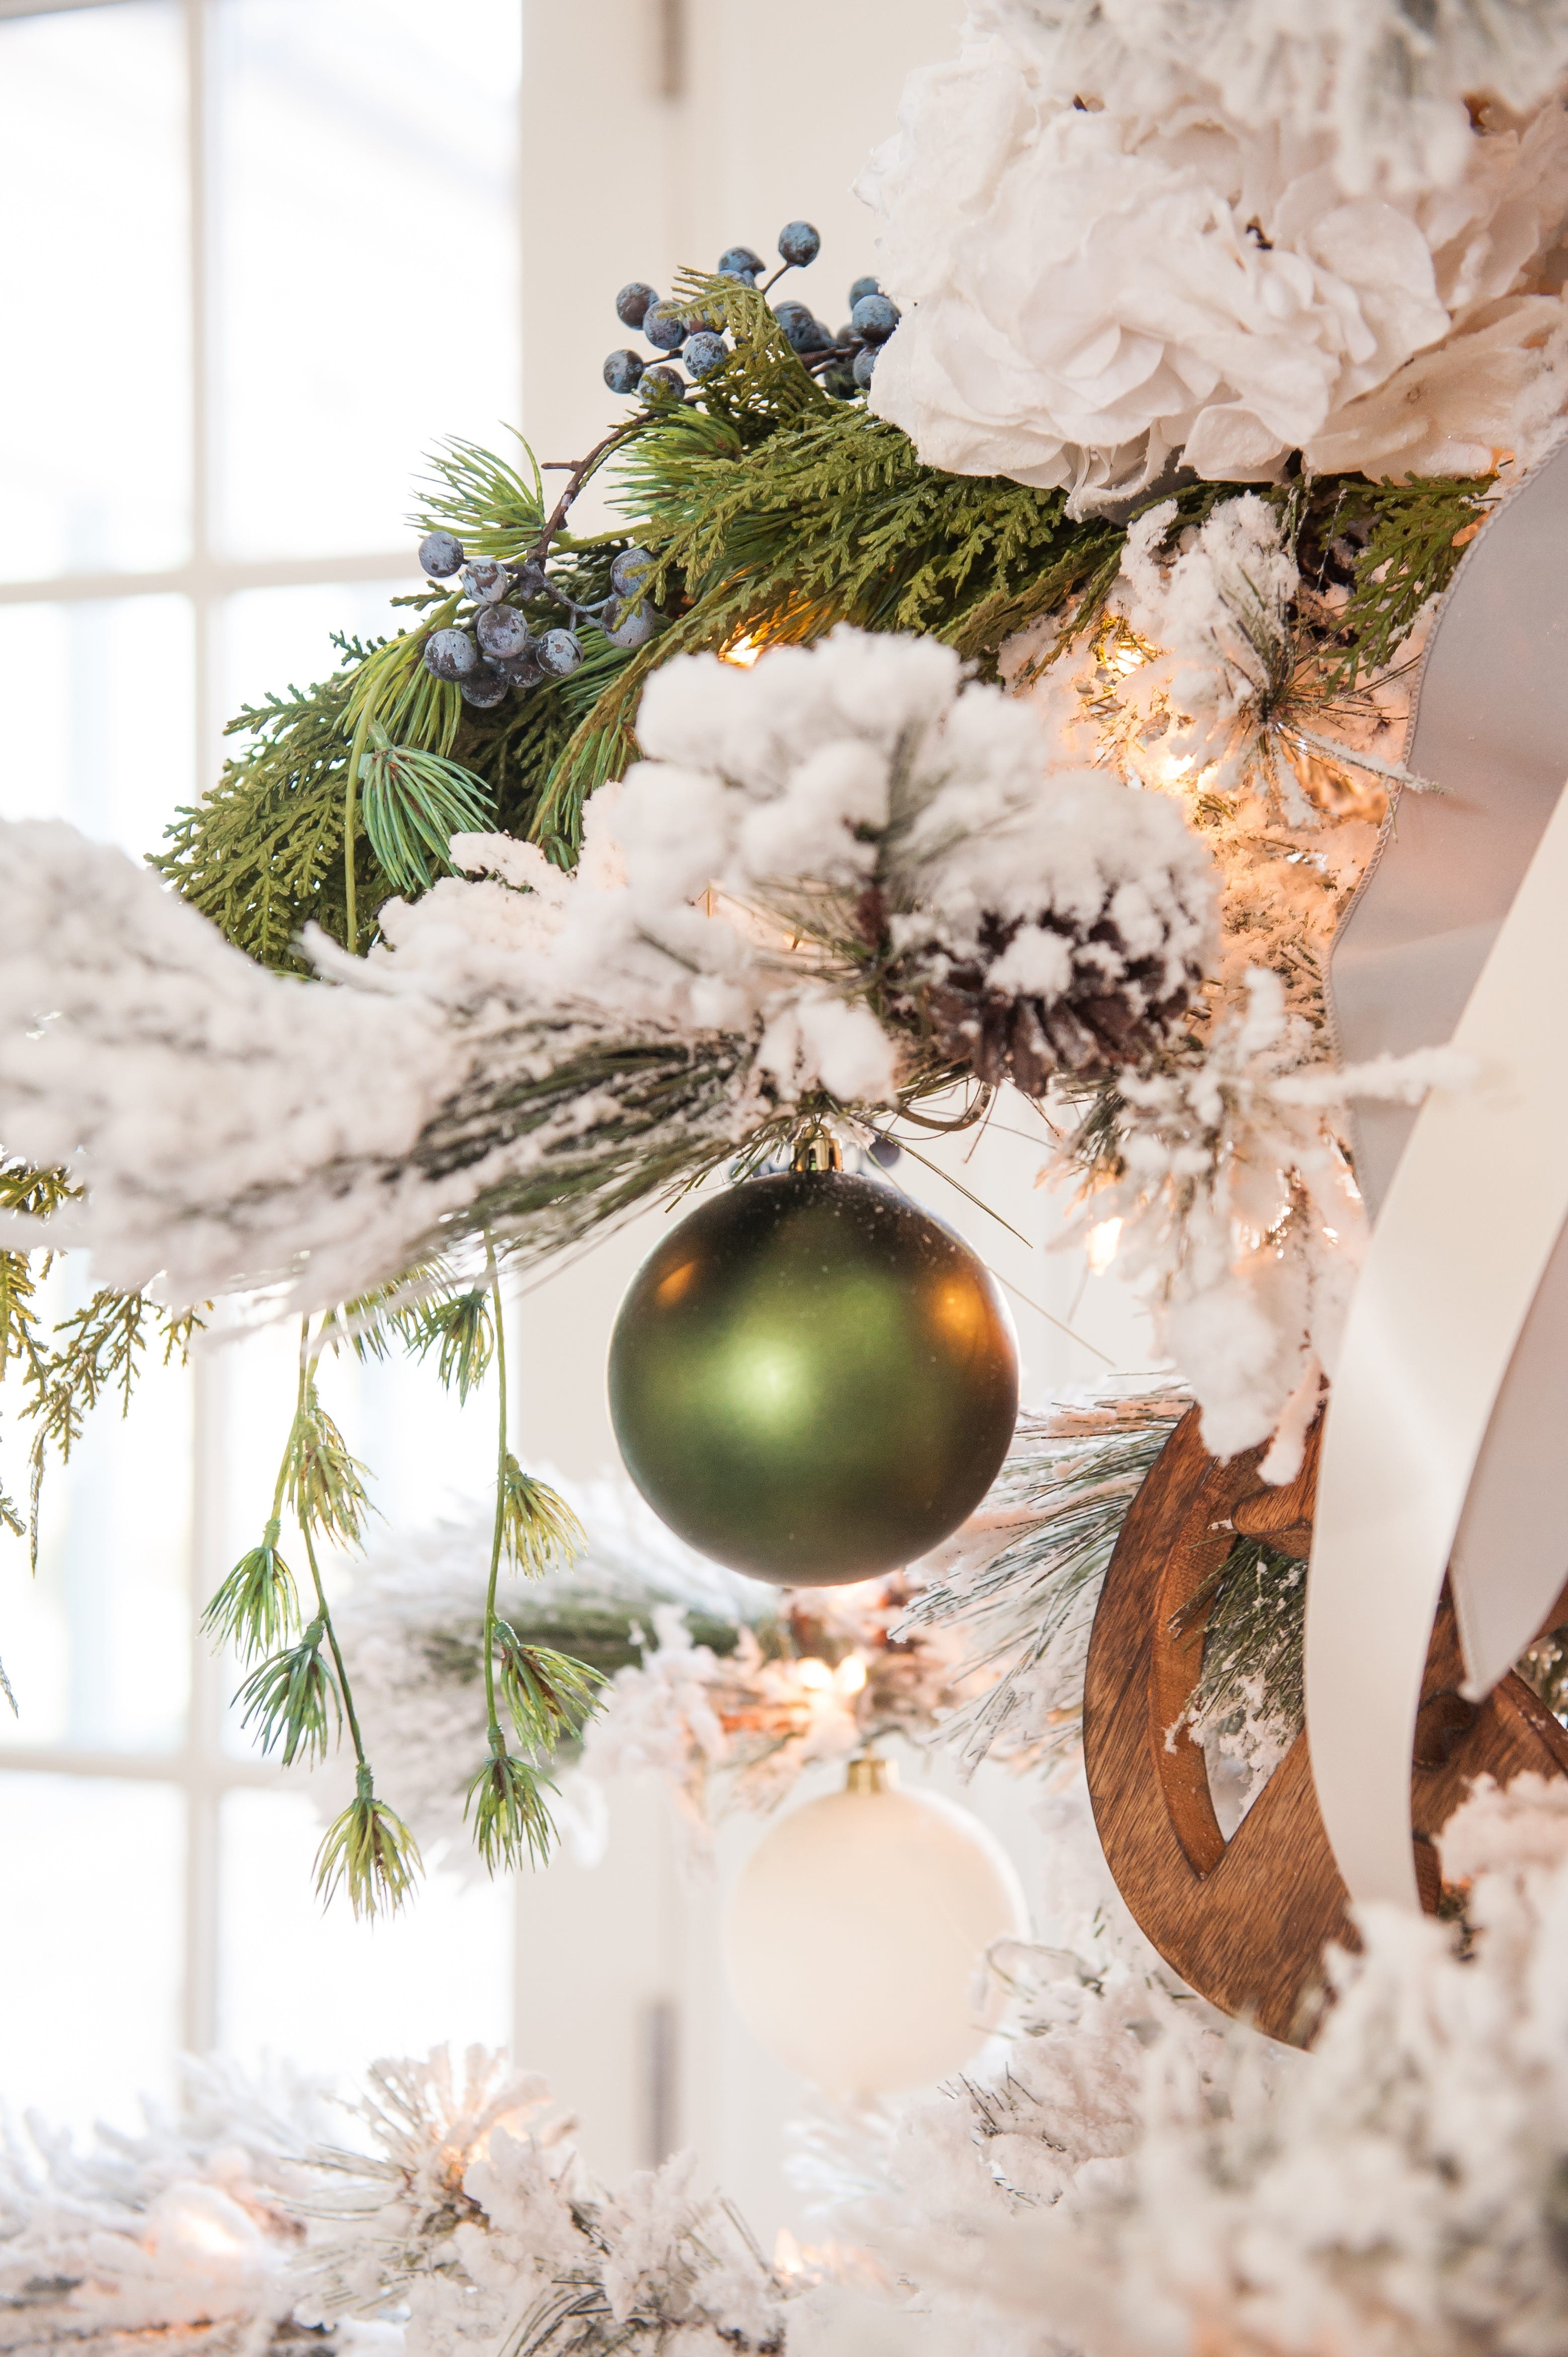 Christmas tree flocked long needle pine christmas tree flocked tree blue decor blue christmas ornaments trimming the tree shades of blue on white blue and cream flocked long needle pine artificial tree blue white ivory cream silver ornaments plaid ribbon